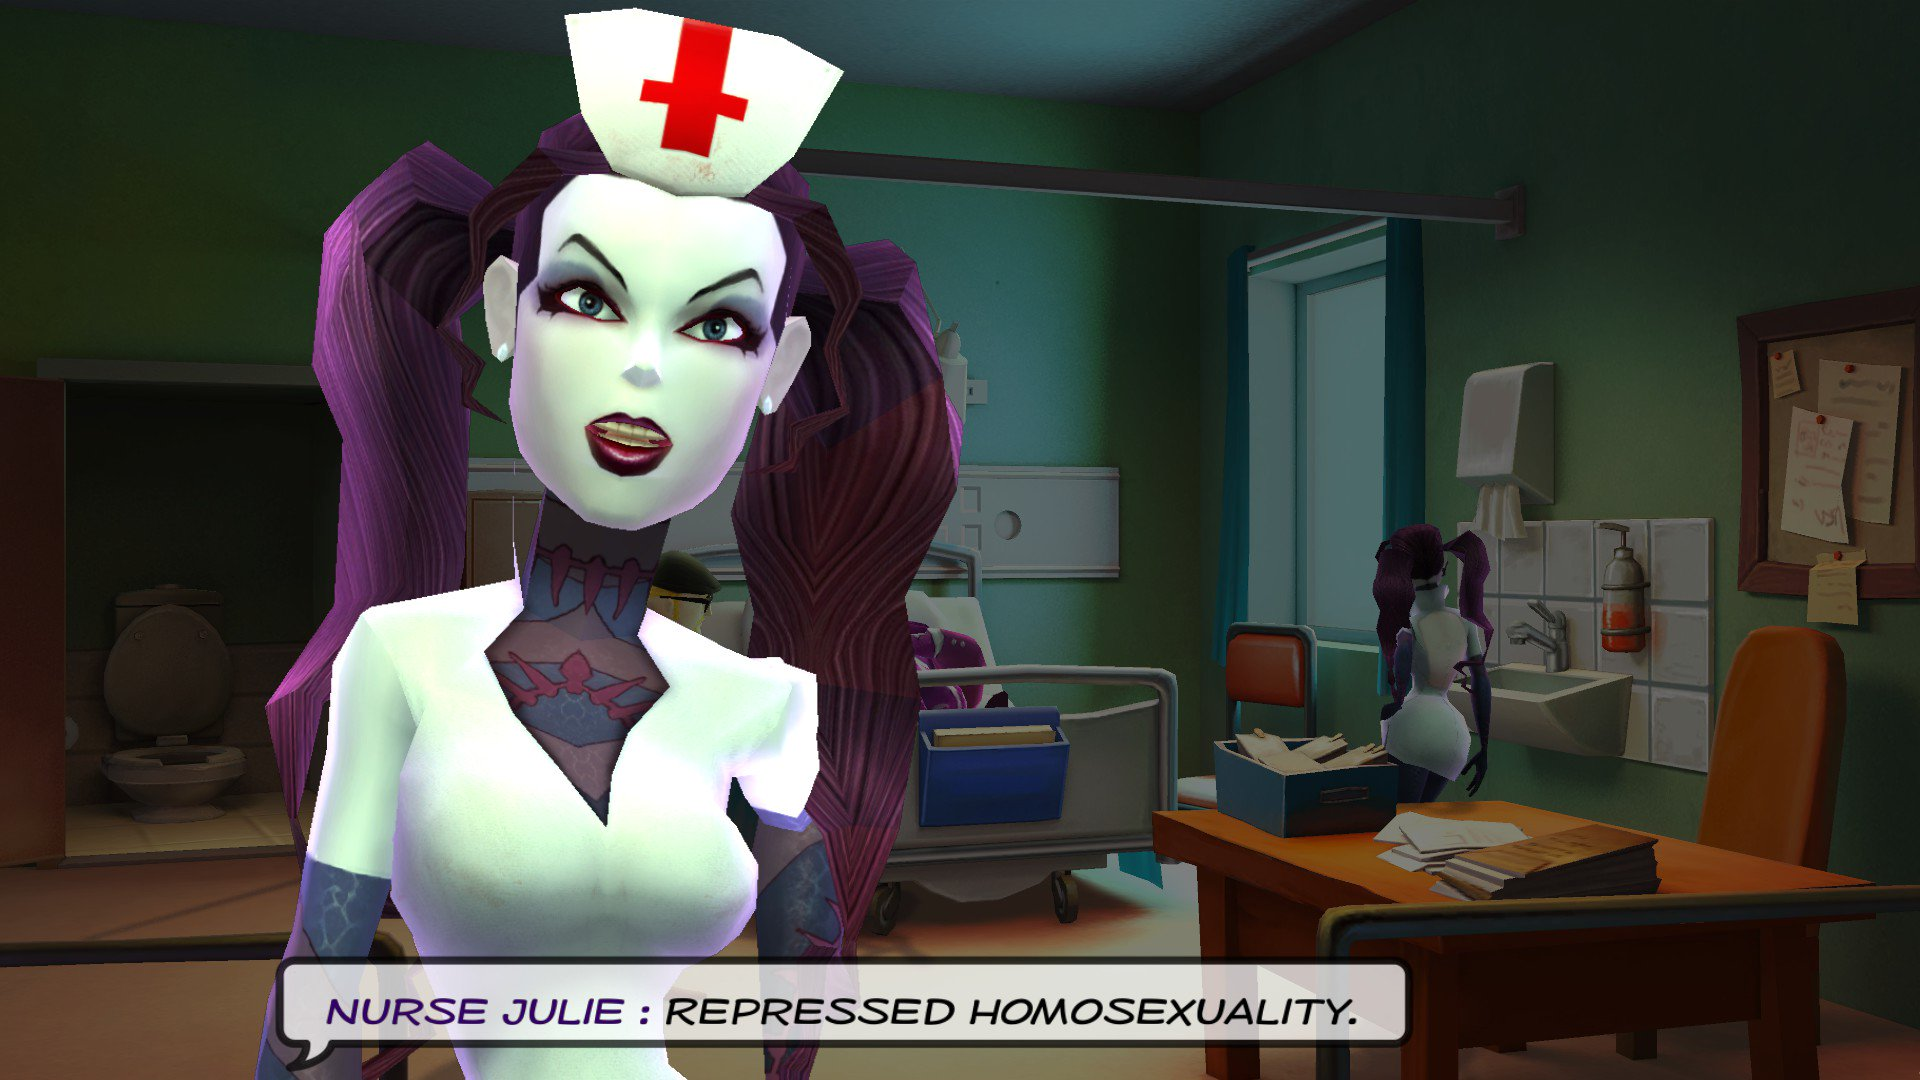 Nurse in a hospital room. Text reads 'Nurse Julie, repressed homosexuality'.